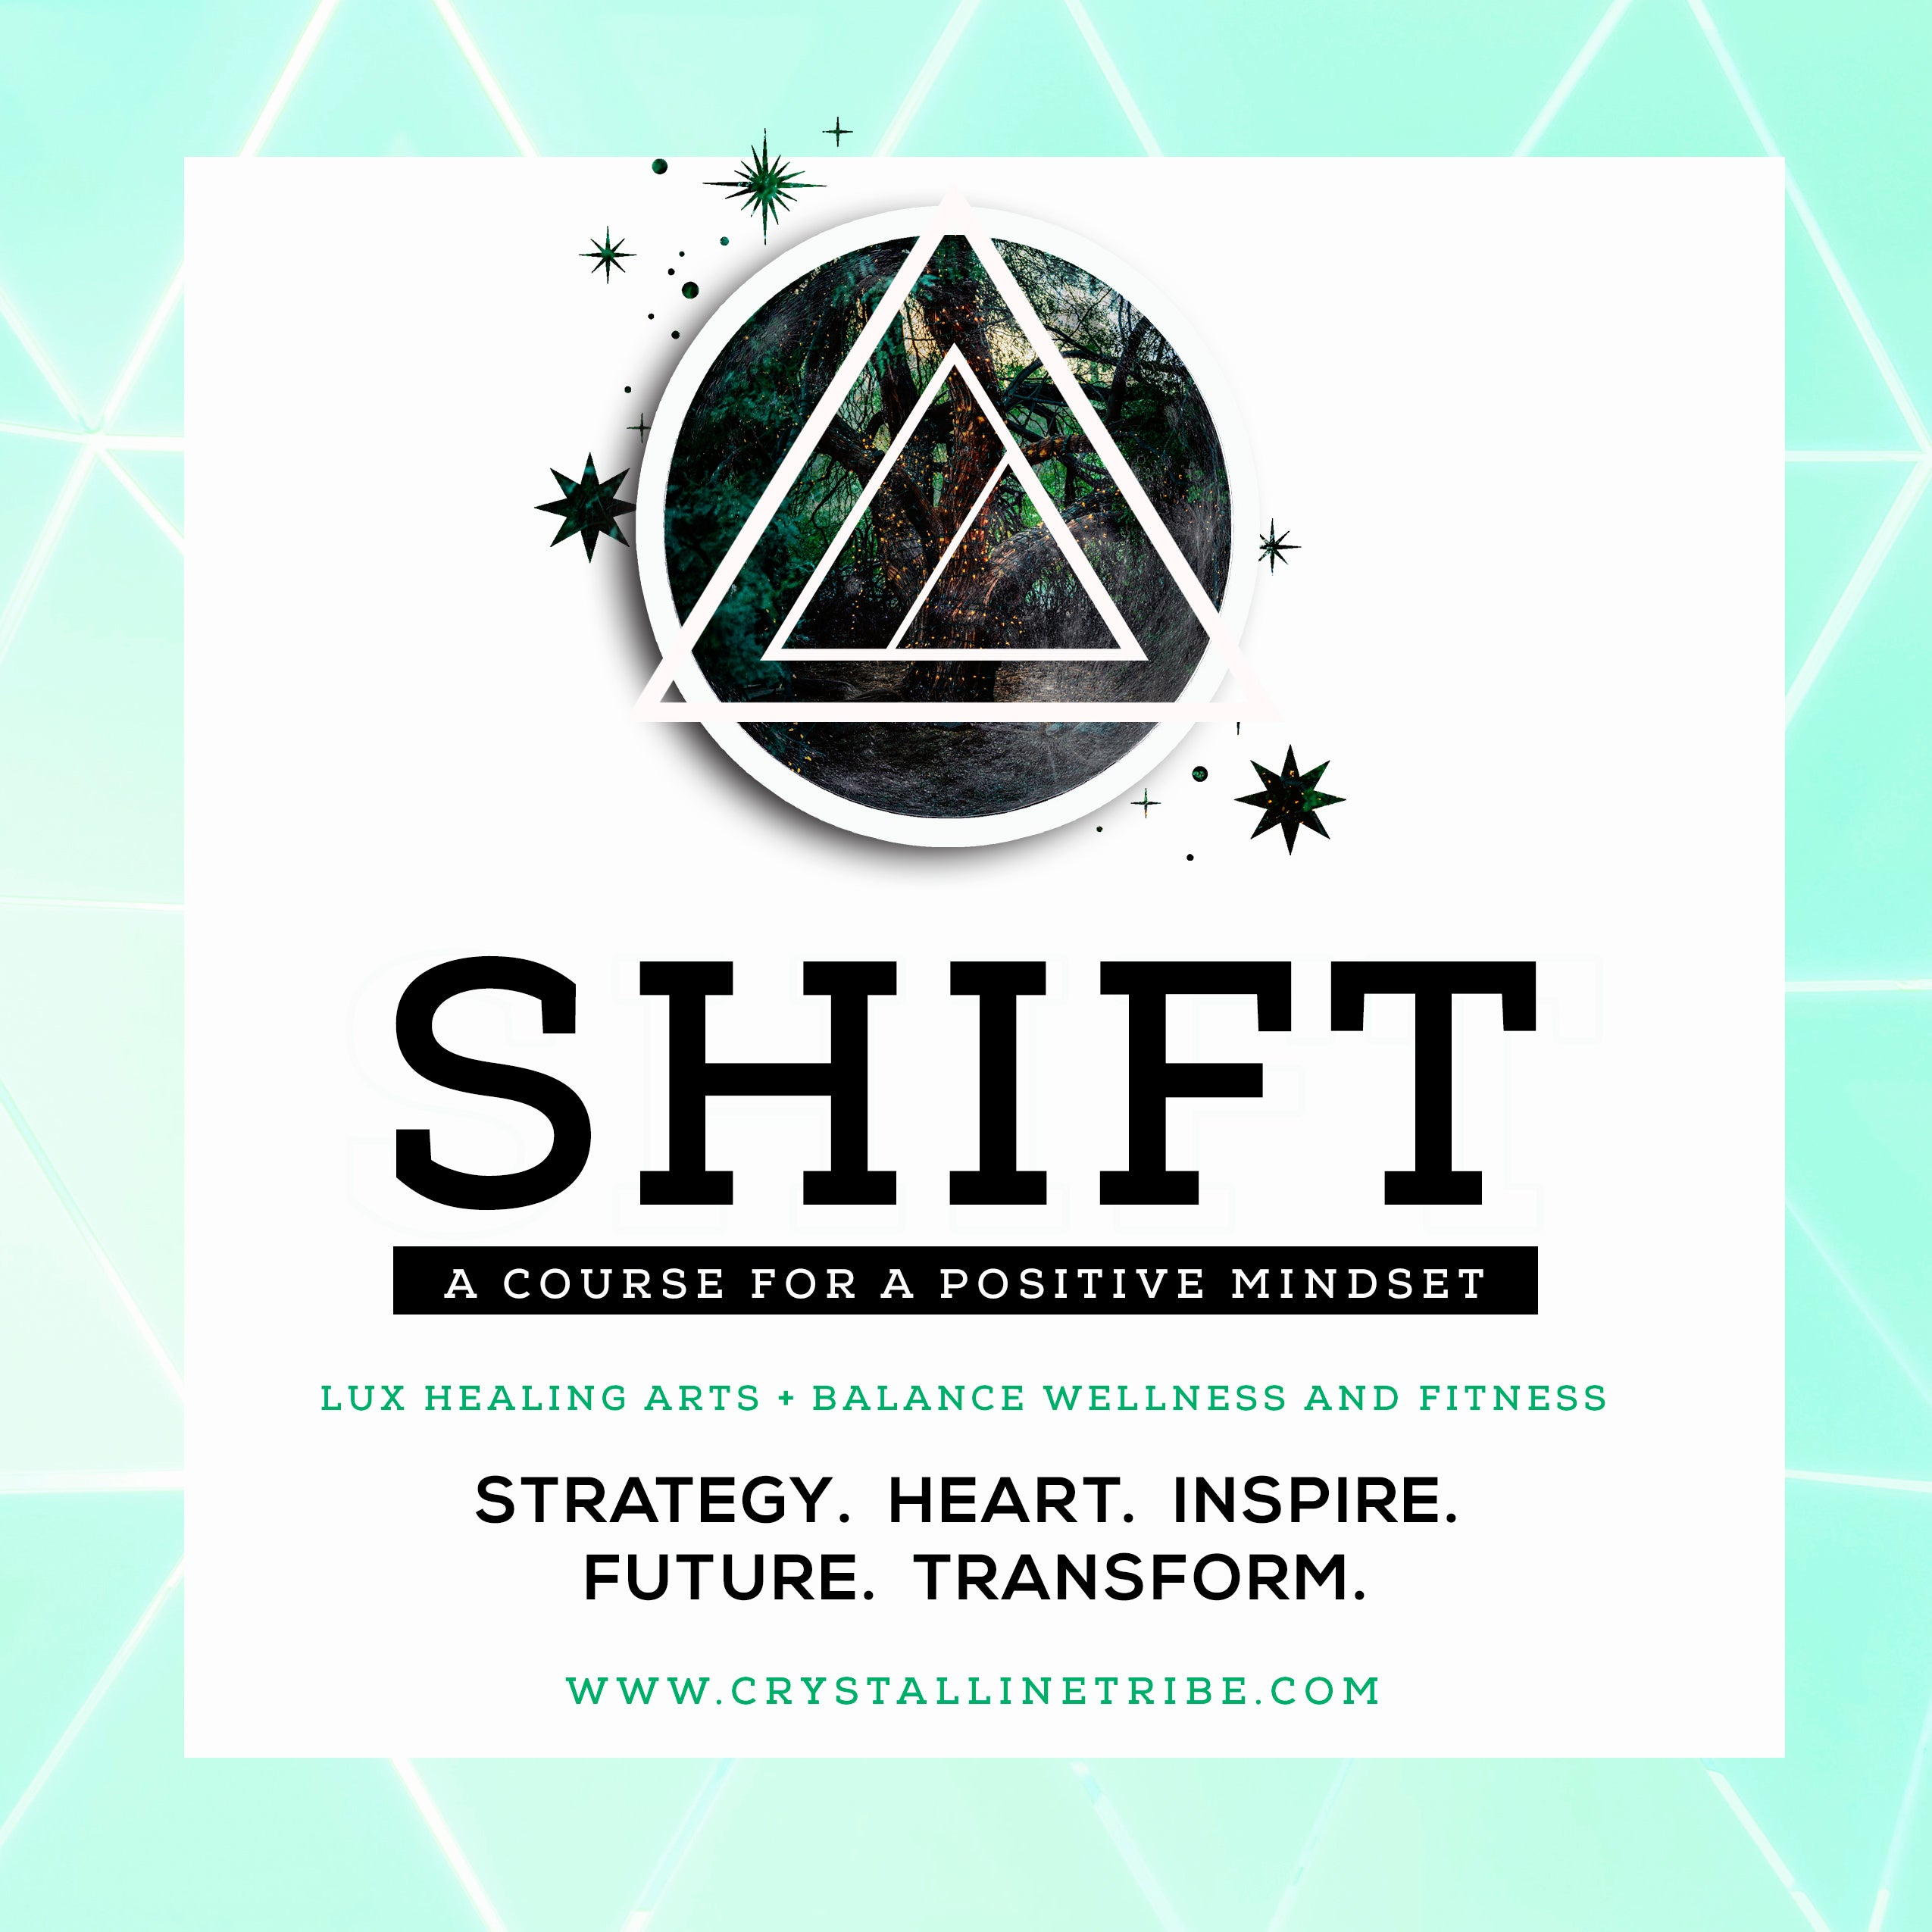 SHIFT Email Course - Crystalline Tribe